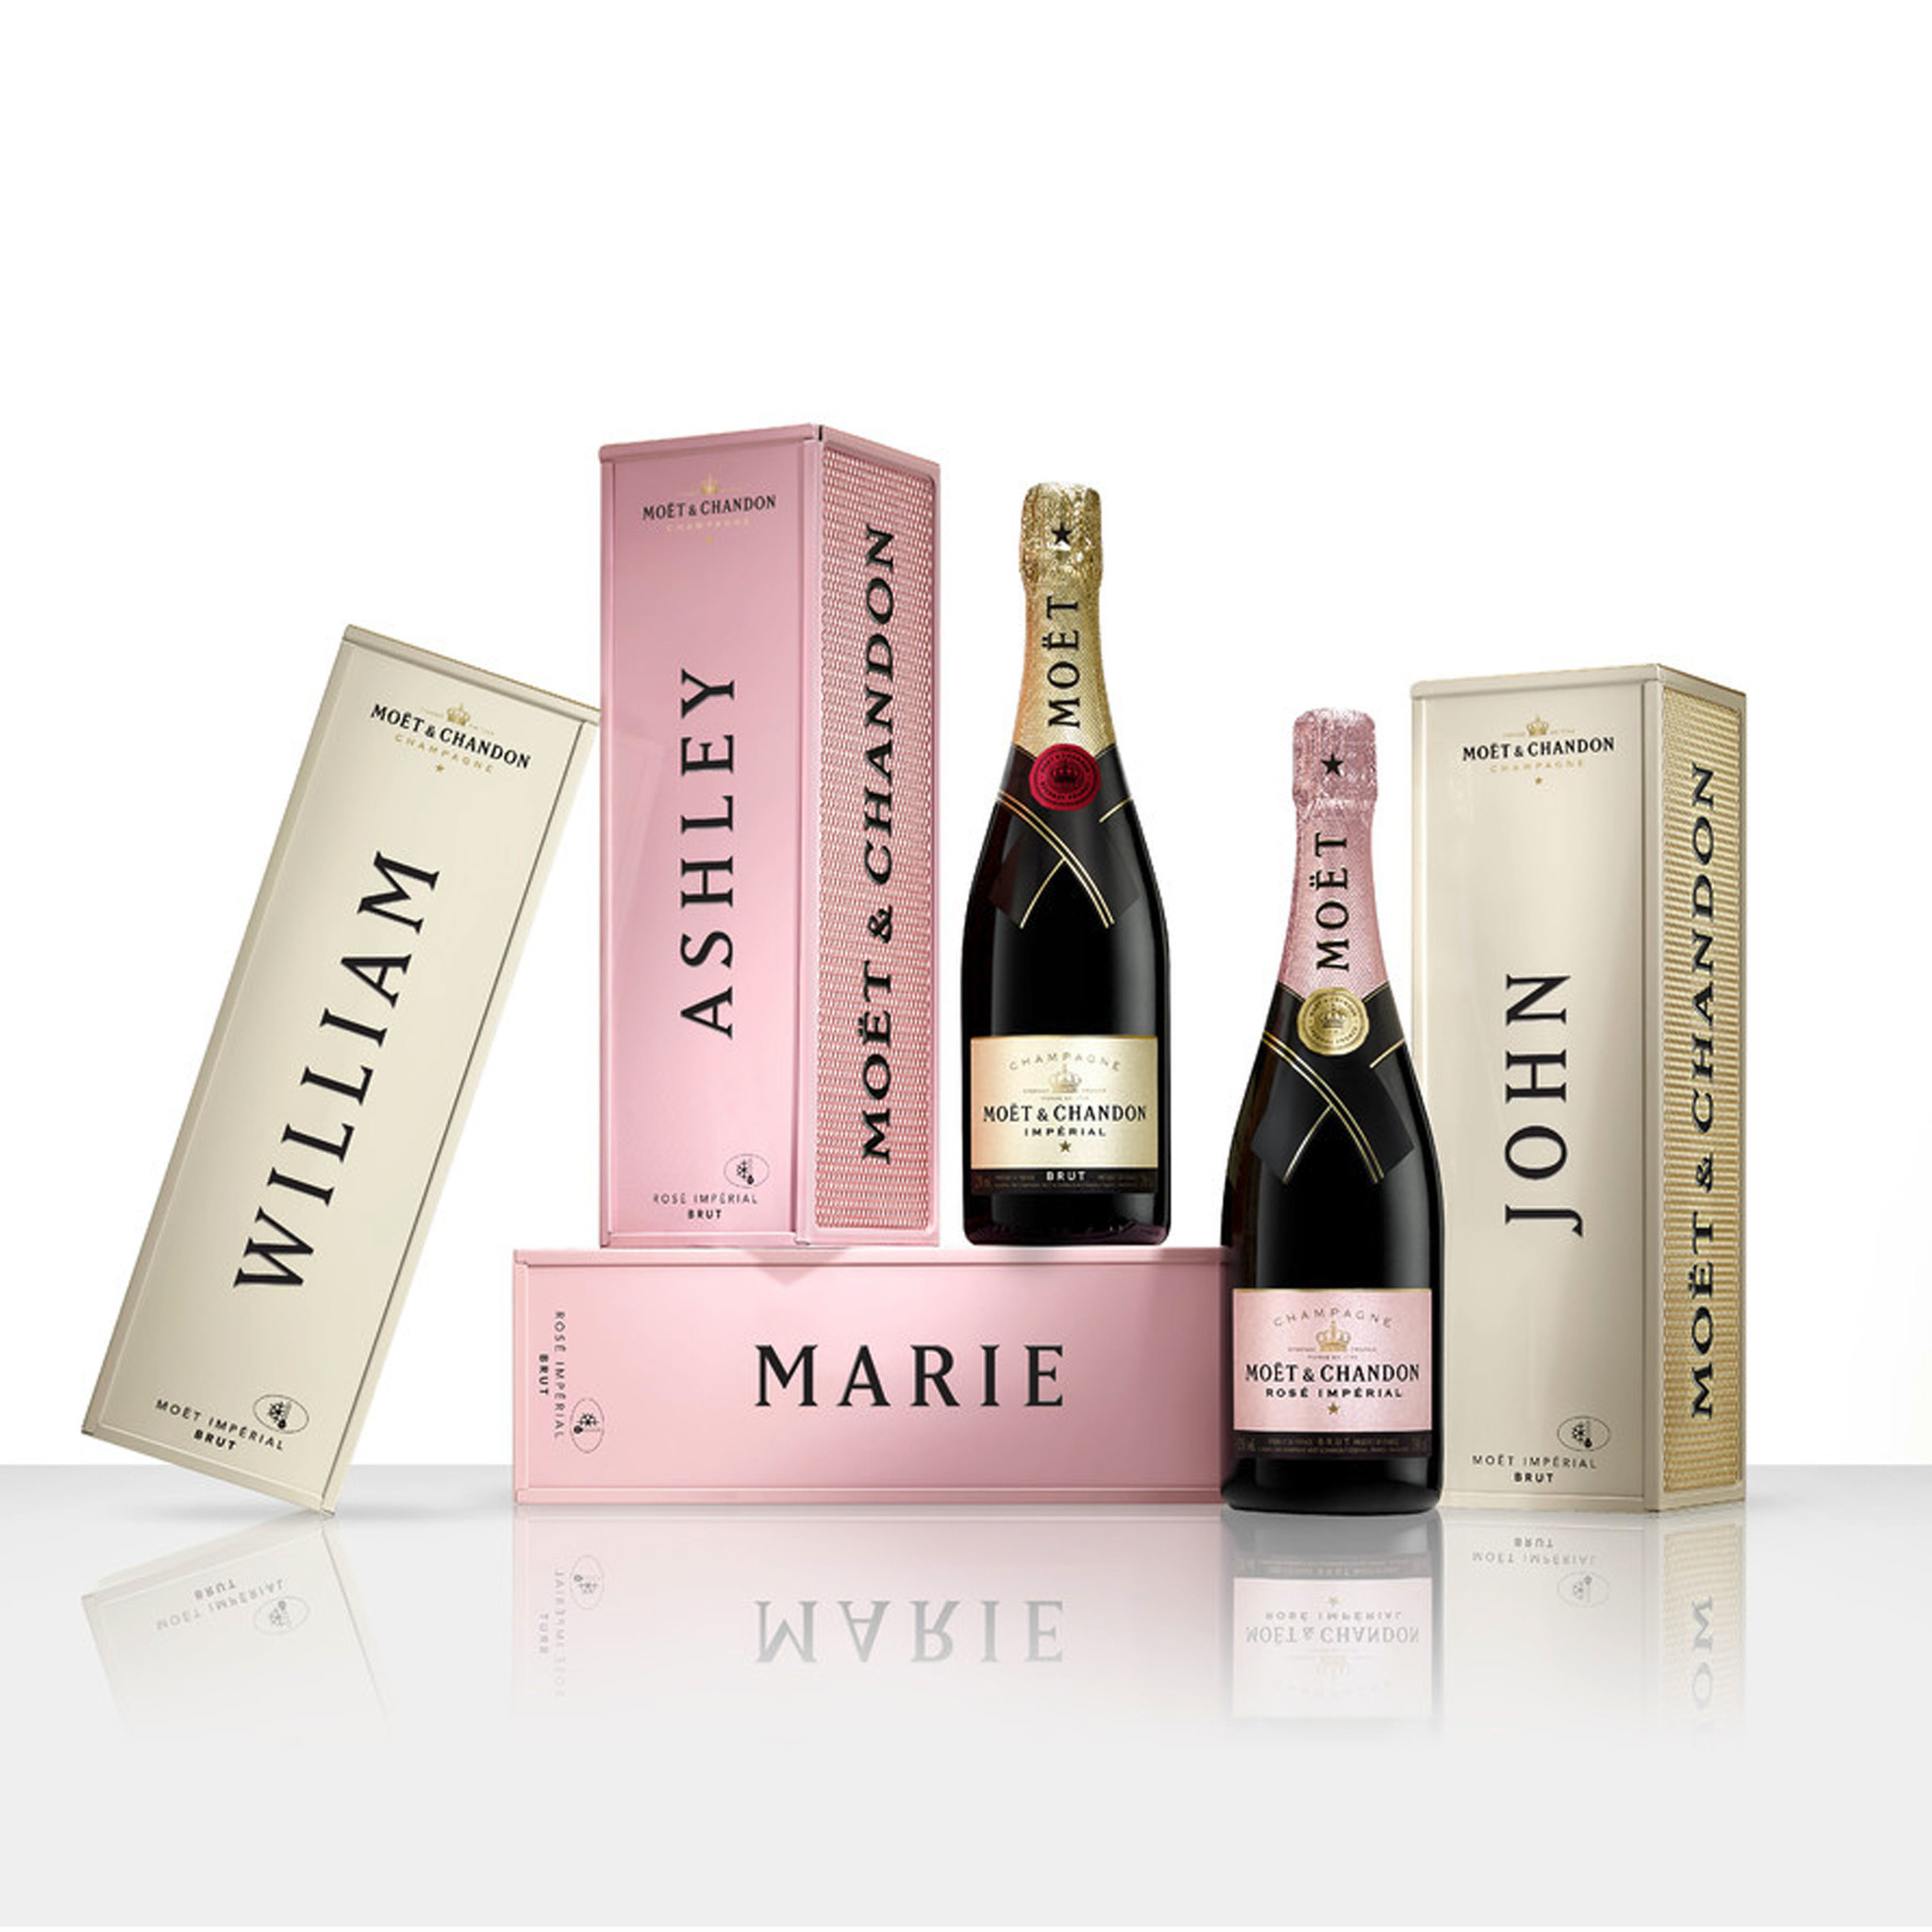 Moet & chandon Rosé specially yours